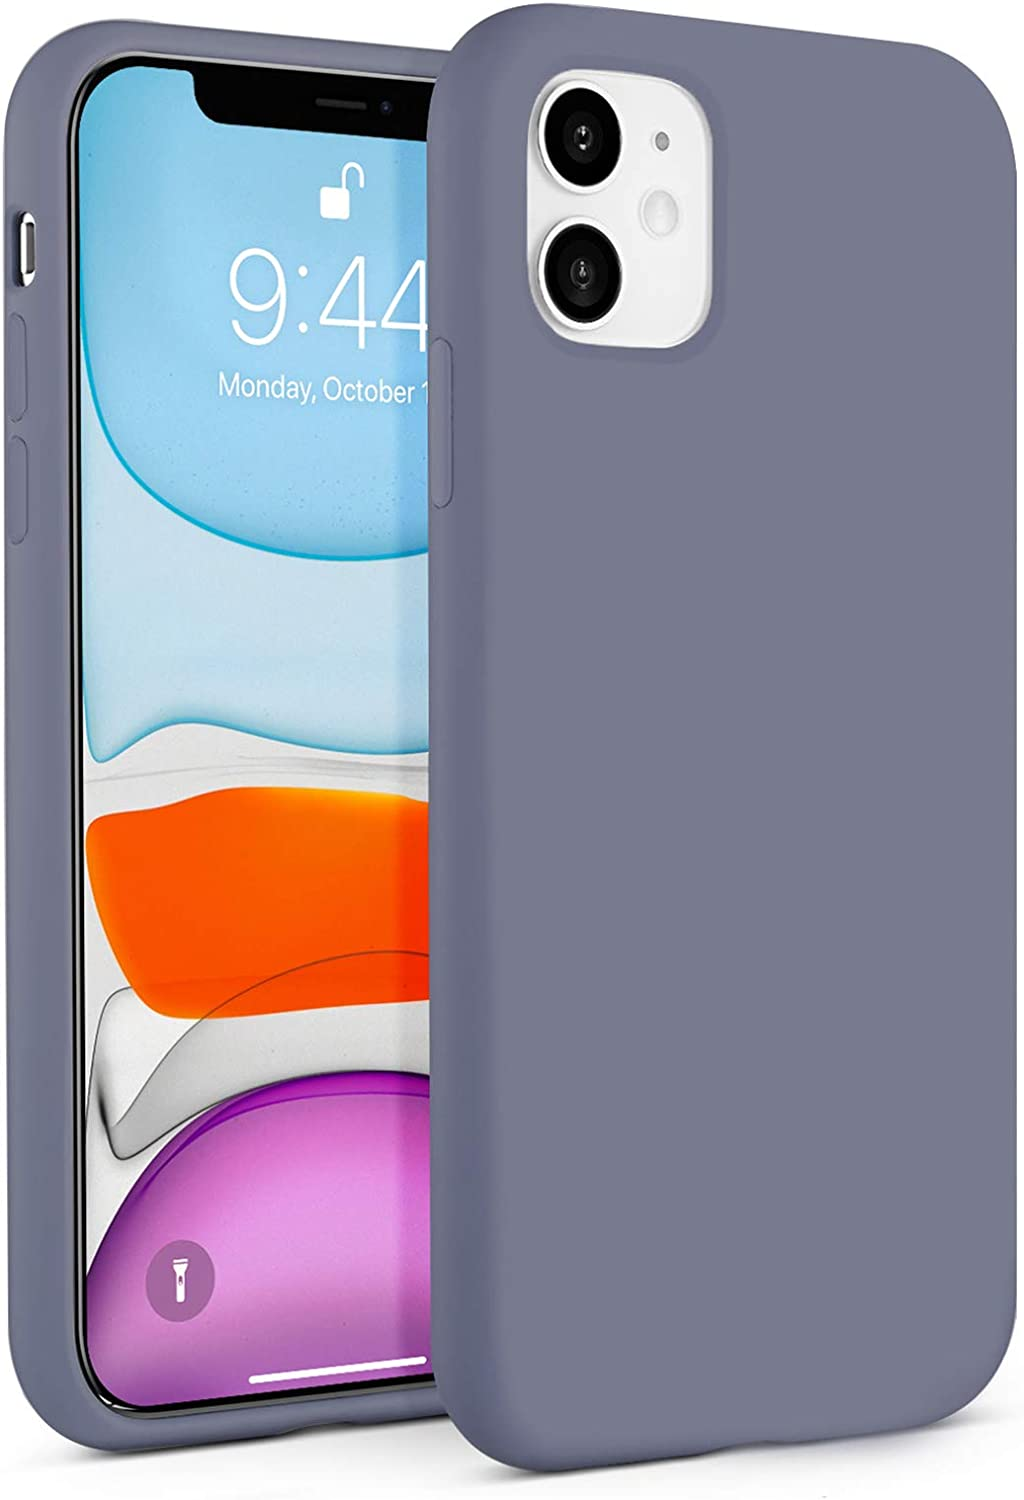 BEBEN Liquid Silicone Case Compatible with iPhone XR Case, Gel Rubber Full Body Protection Shockproof Cover Case Drop Protection Case for Apple iPhone XR 2018 (Blue Gray)